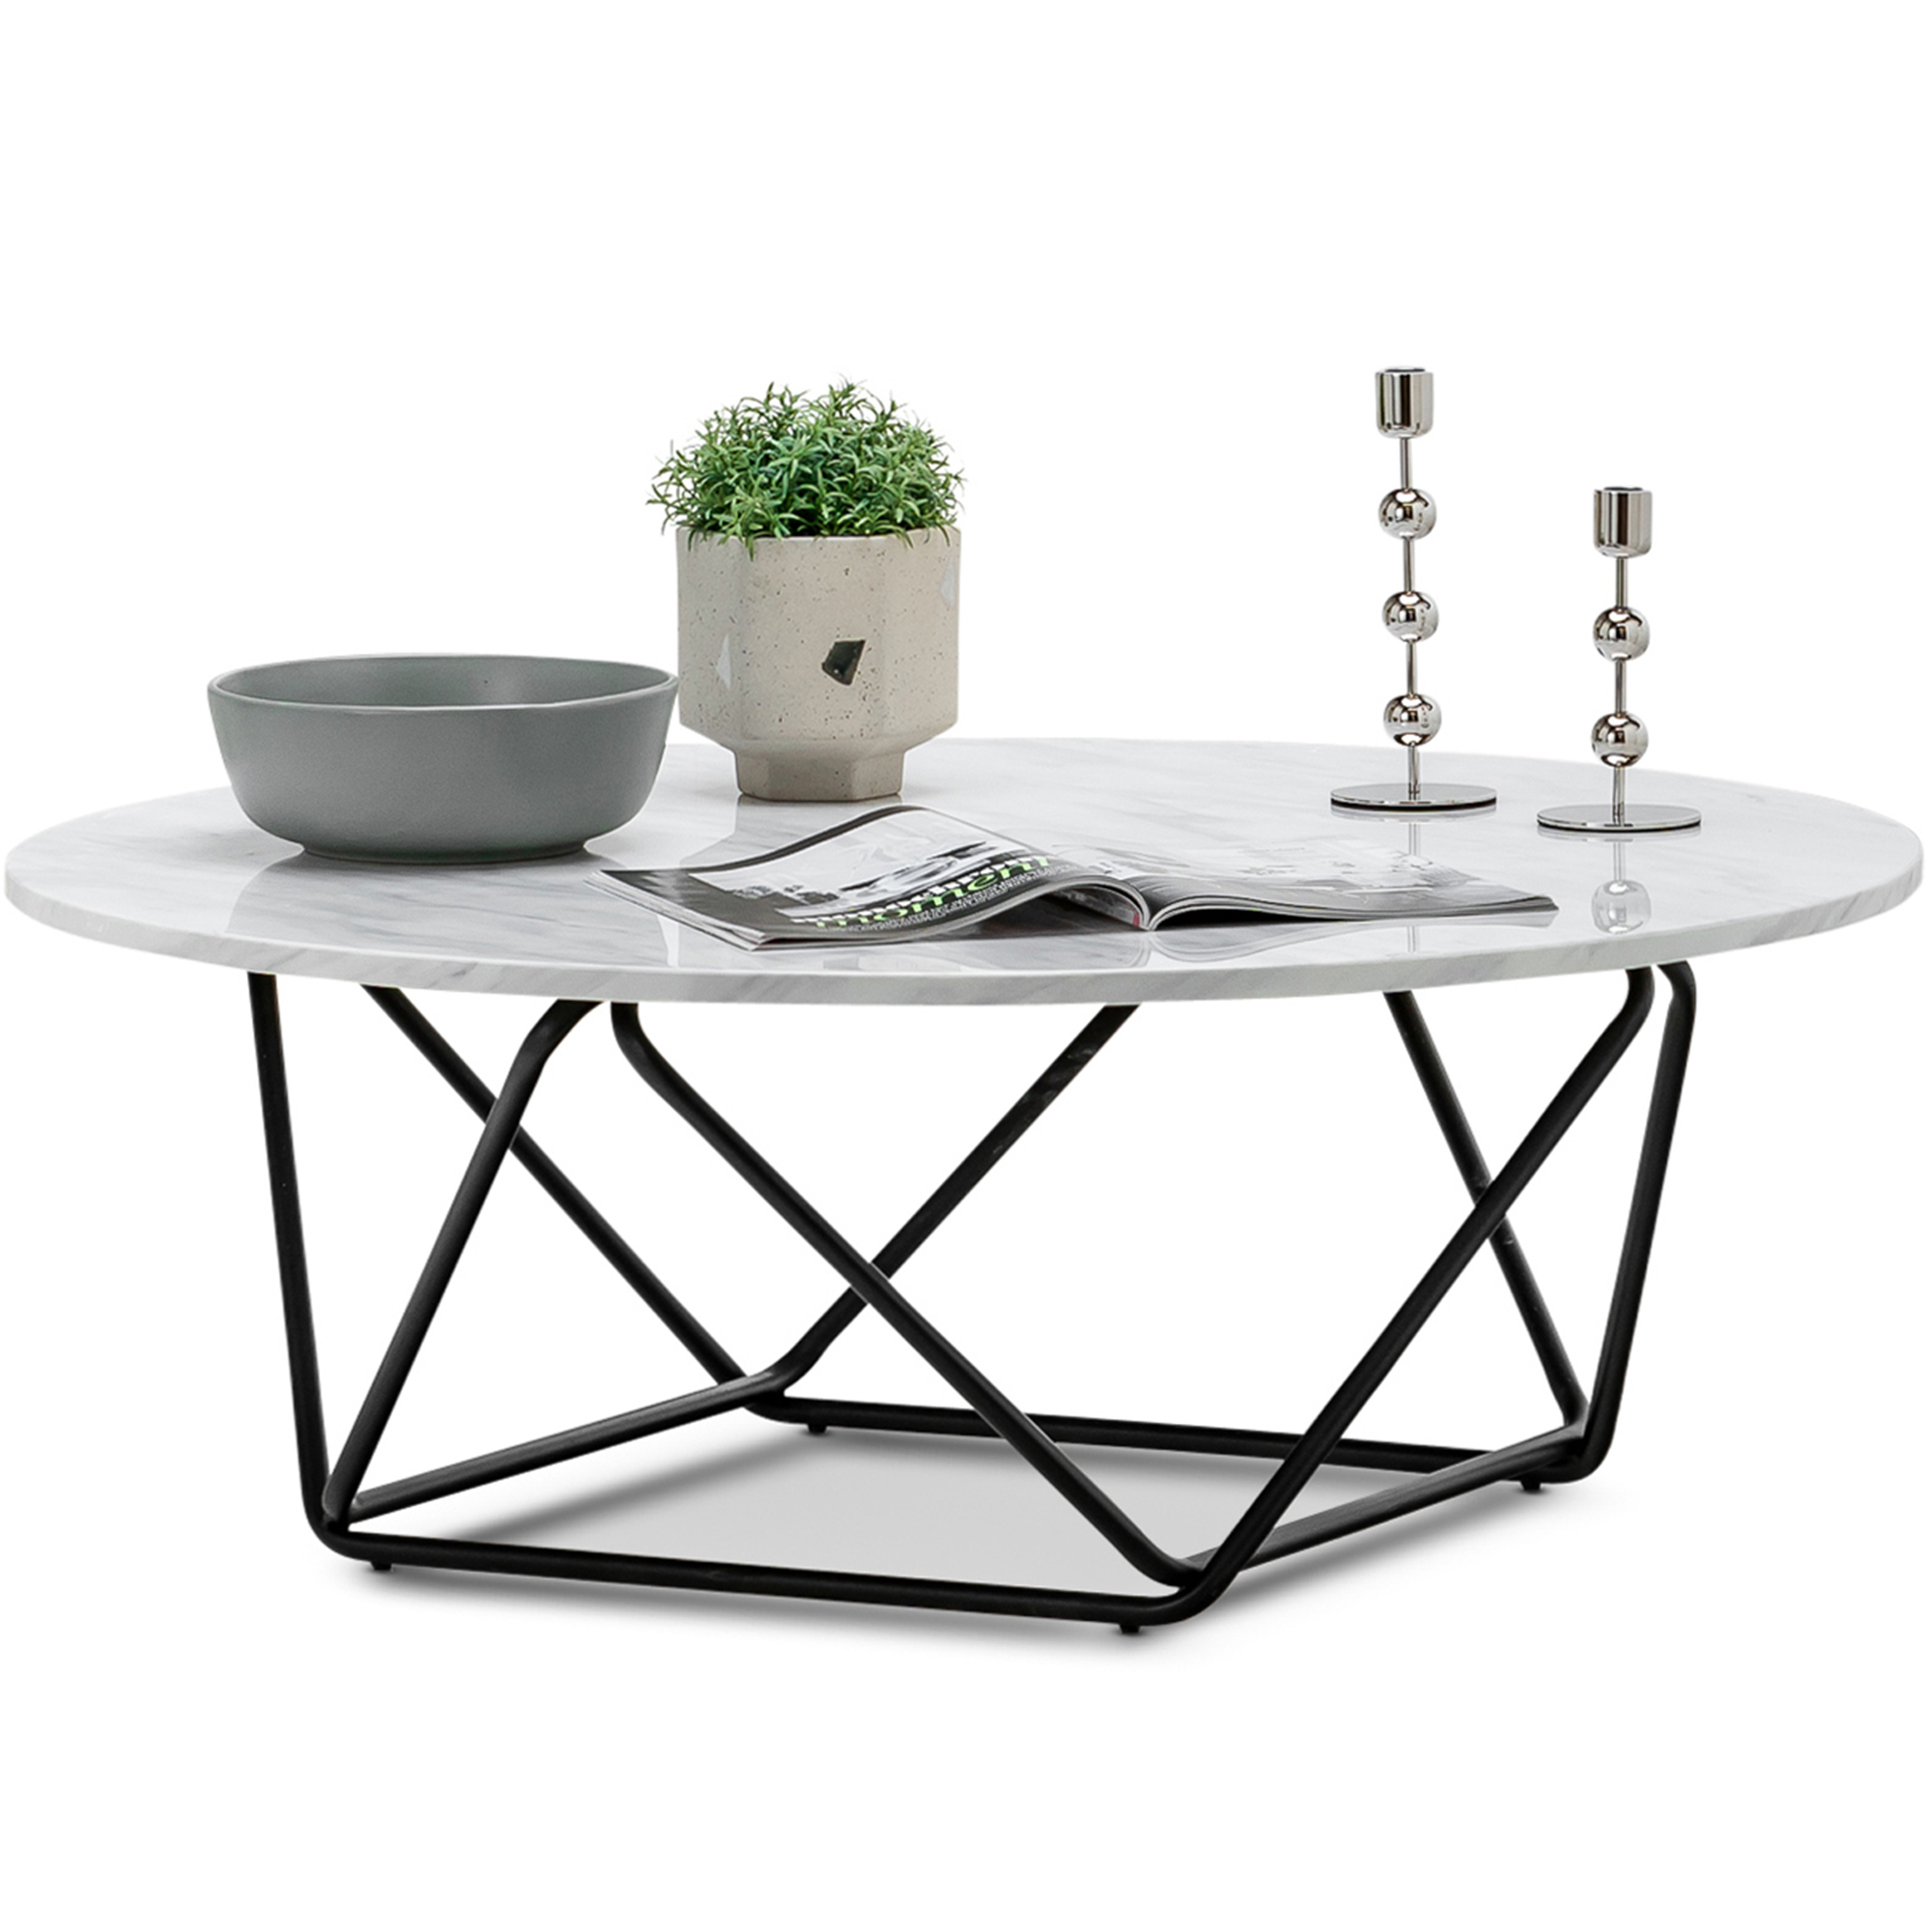 Continental Designs Black White Aria Marble Coffee Table Reviews Temple Webster